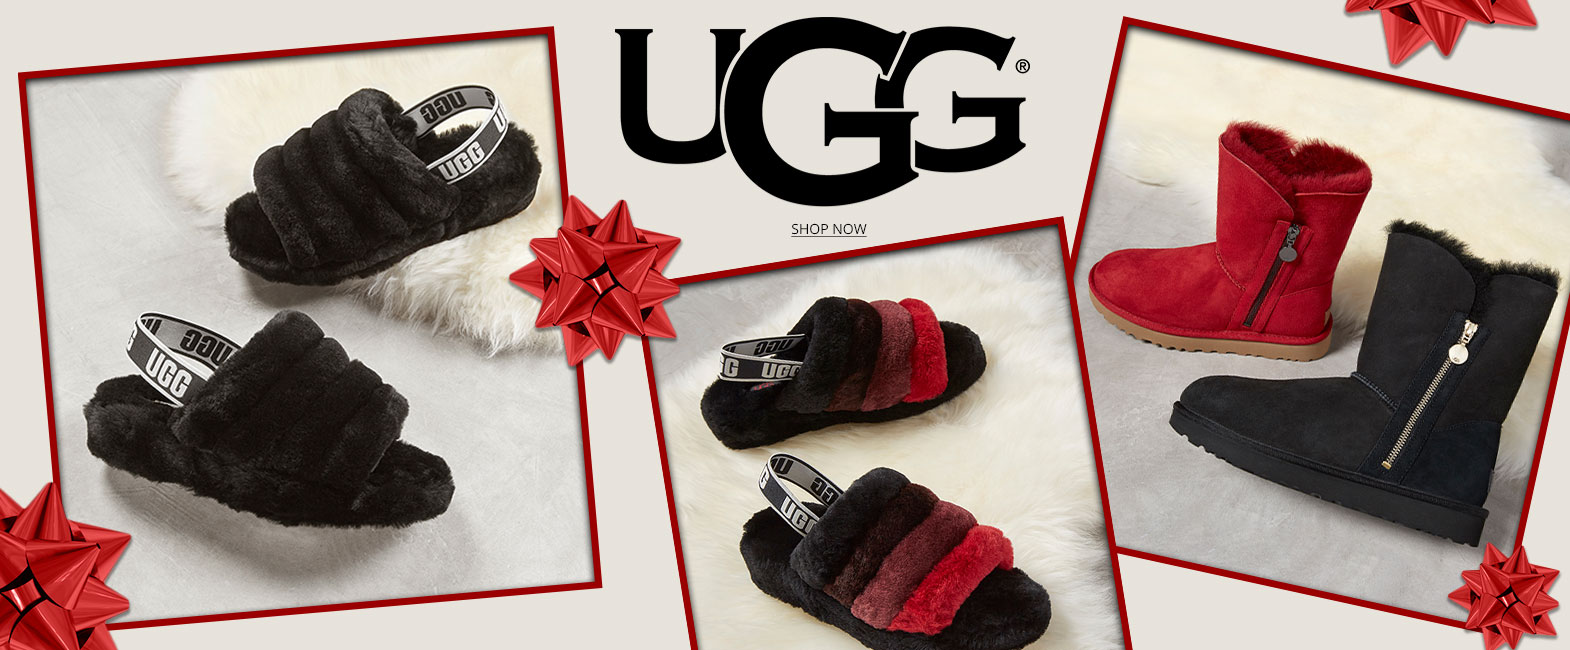 Shop all UGG Shoes - Shop Now